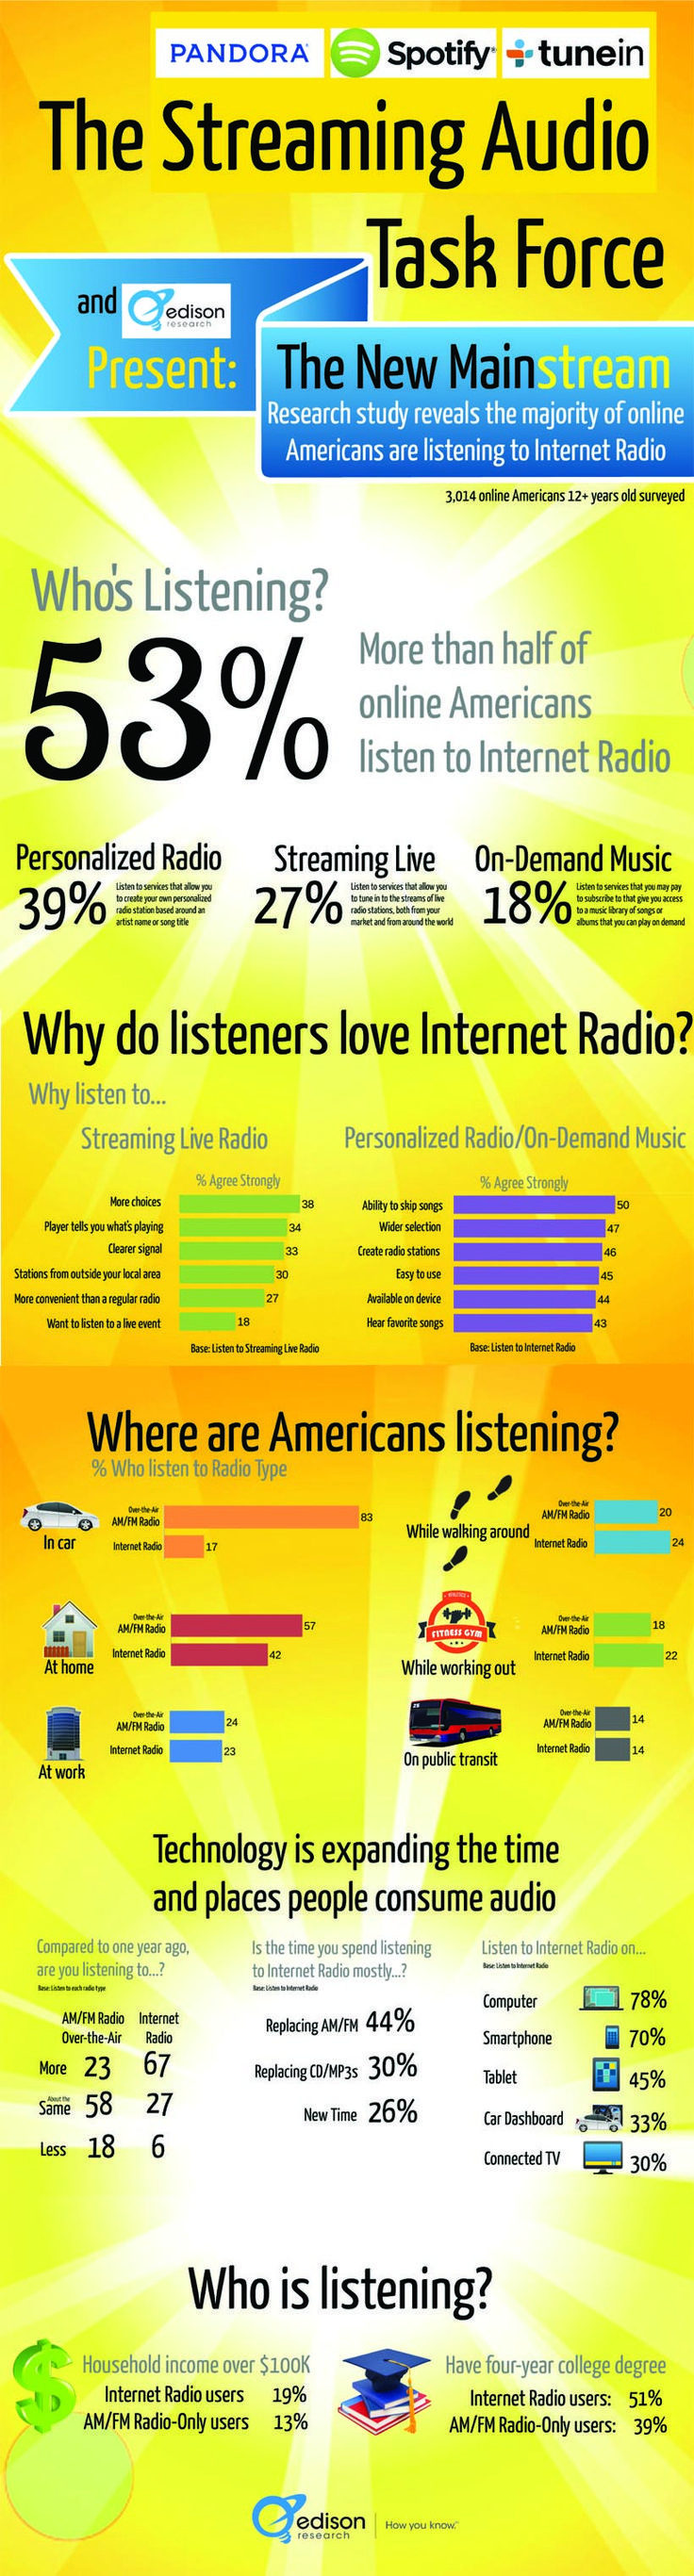 The New MainStream an infographic re. streaming radio and who's listening from Edison Research.